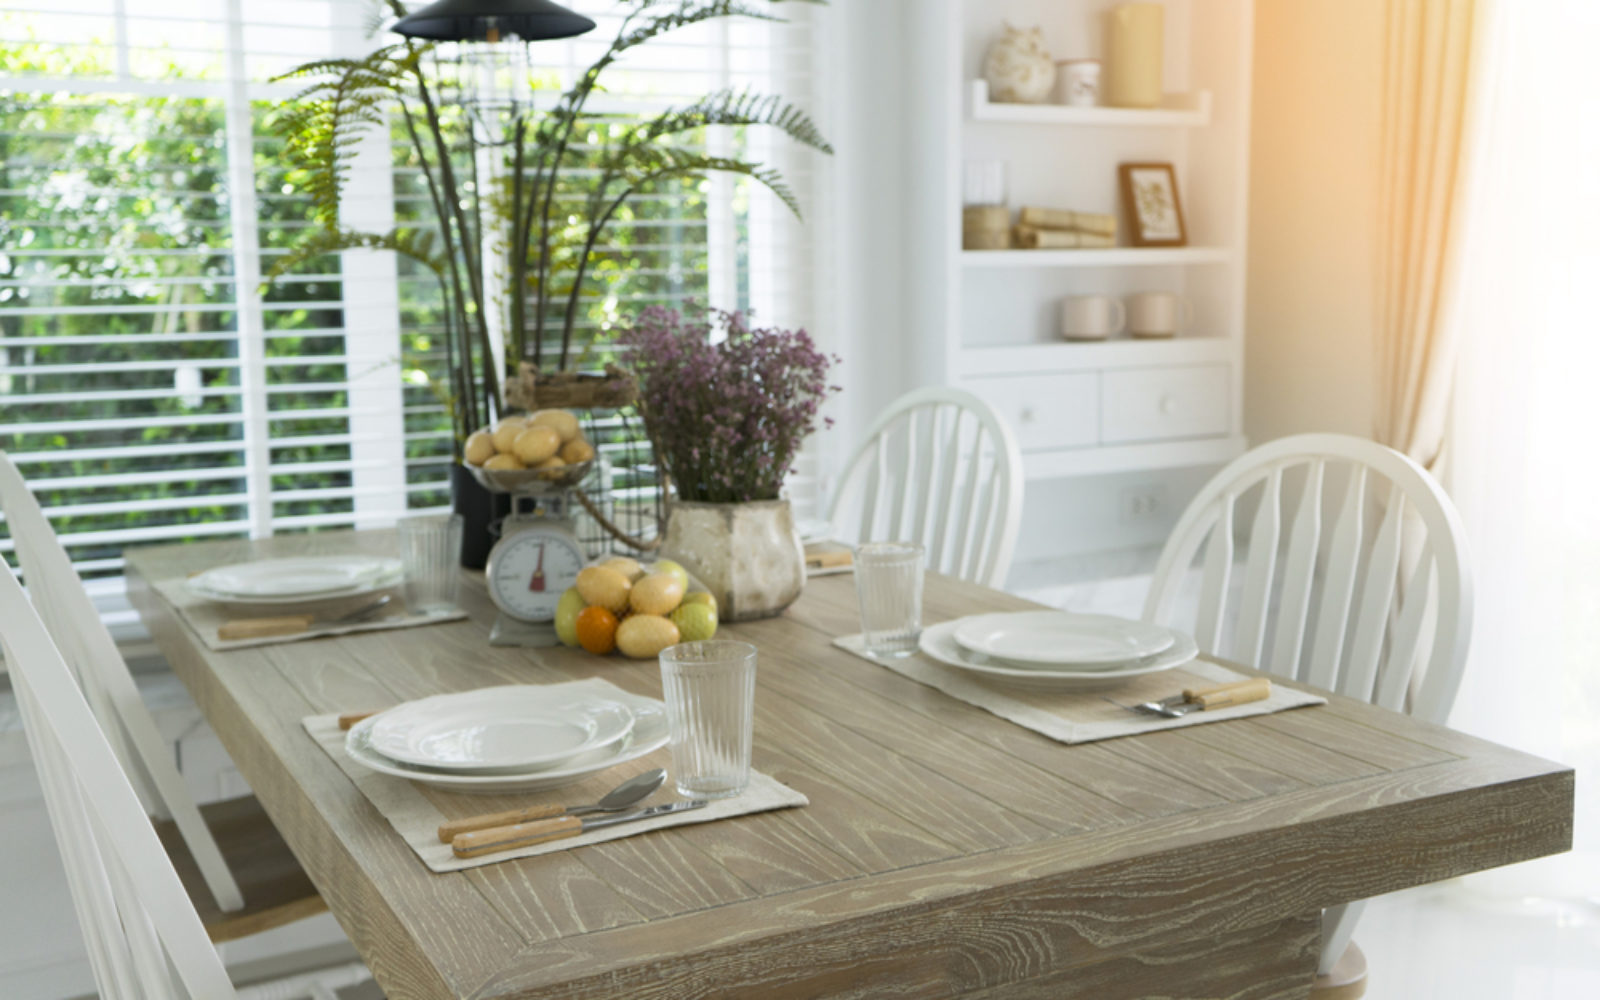 Better homes and gardens real estate life blog - Better homes and gardens interior designer ...